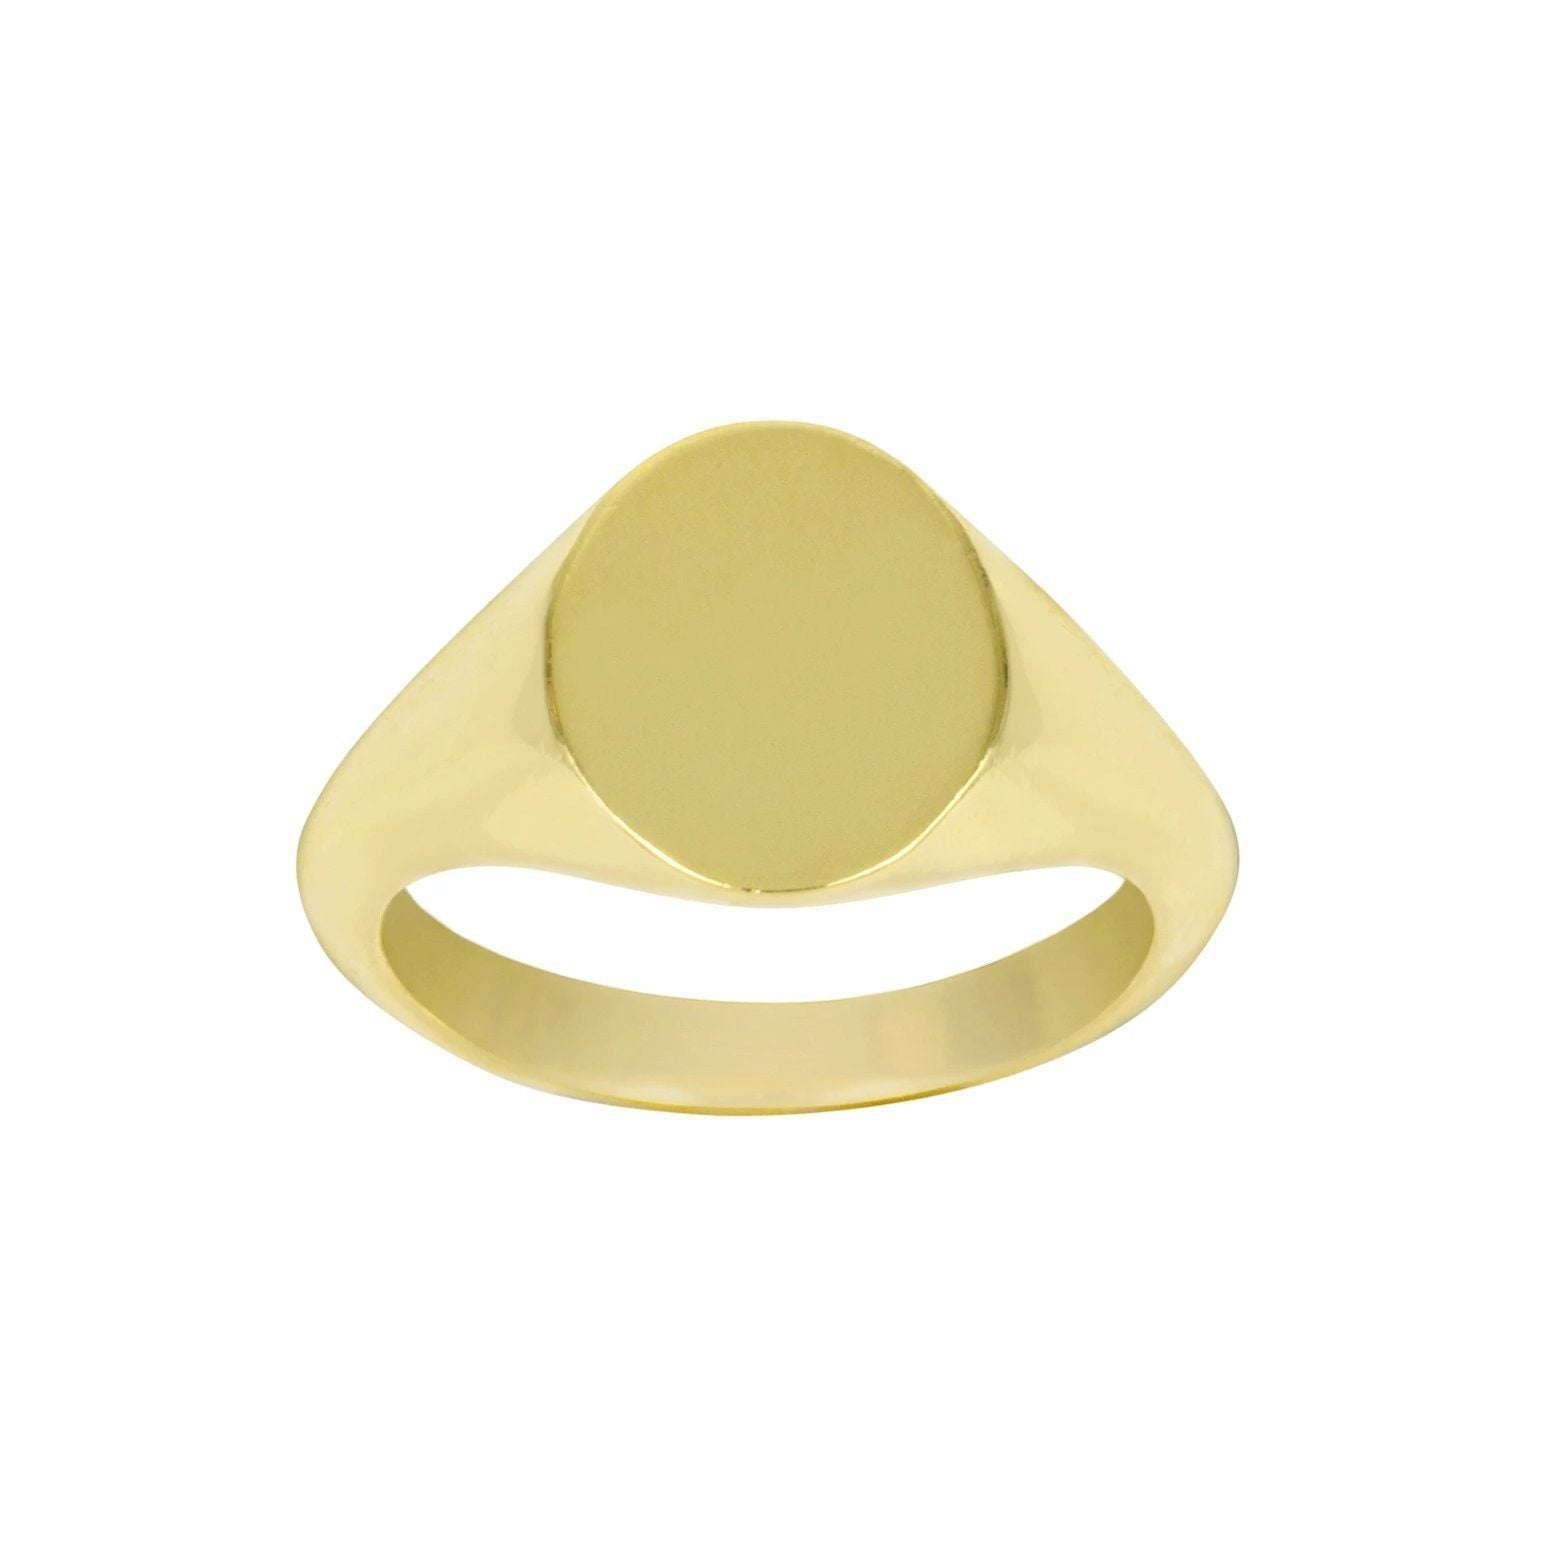 Up close image of the gold Oval Signet Ring against a white background.